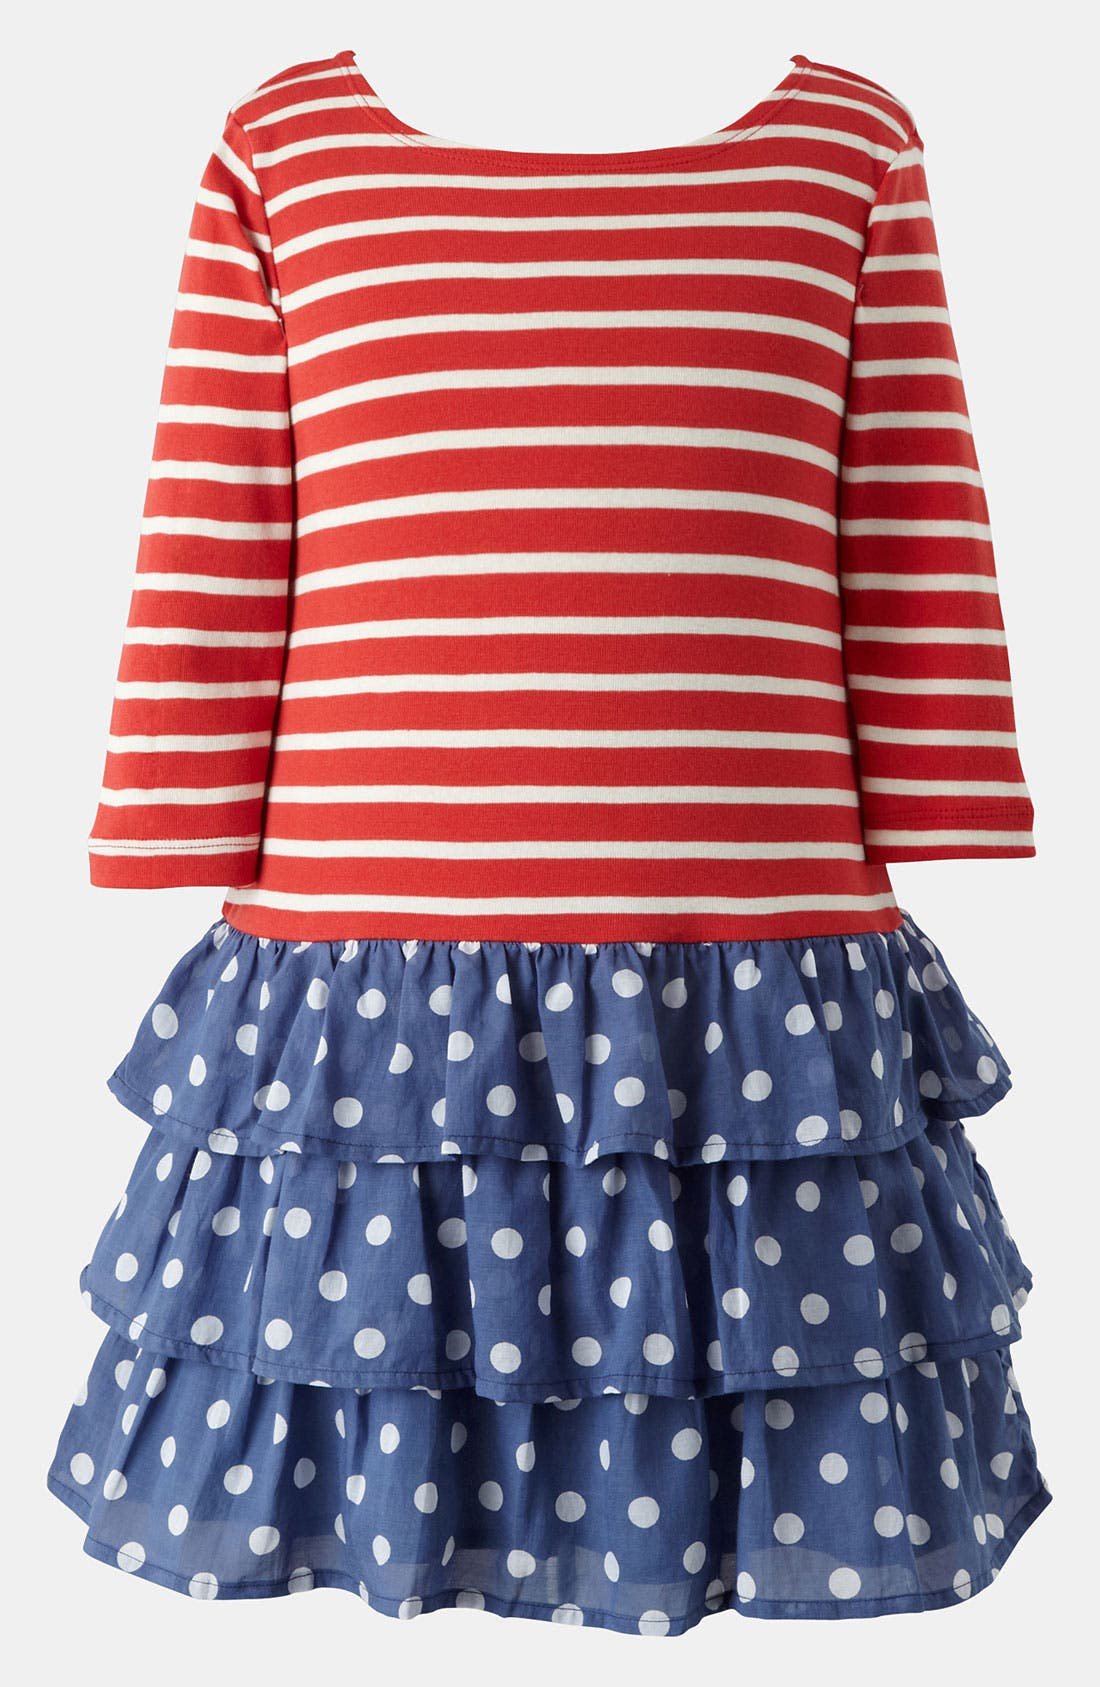 Main Image - Mini Boden 'Stripy' Ruffle Dress (Little Girls & Big Girls)